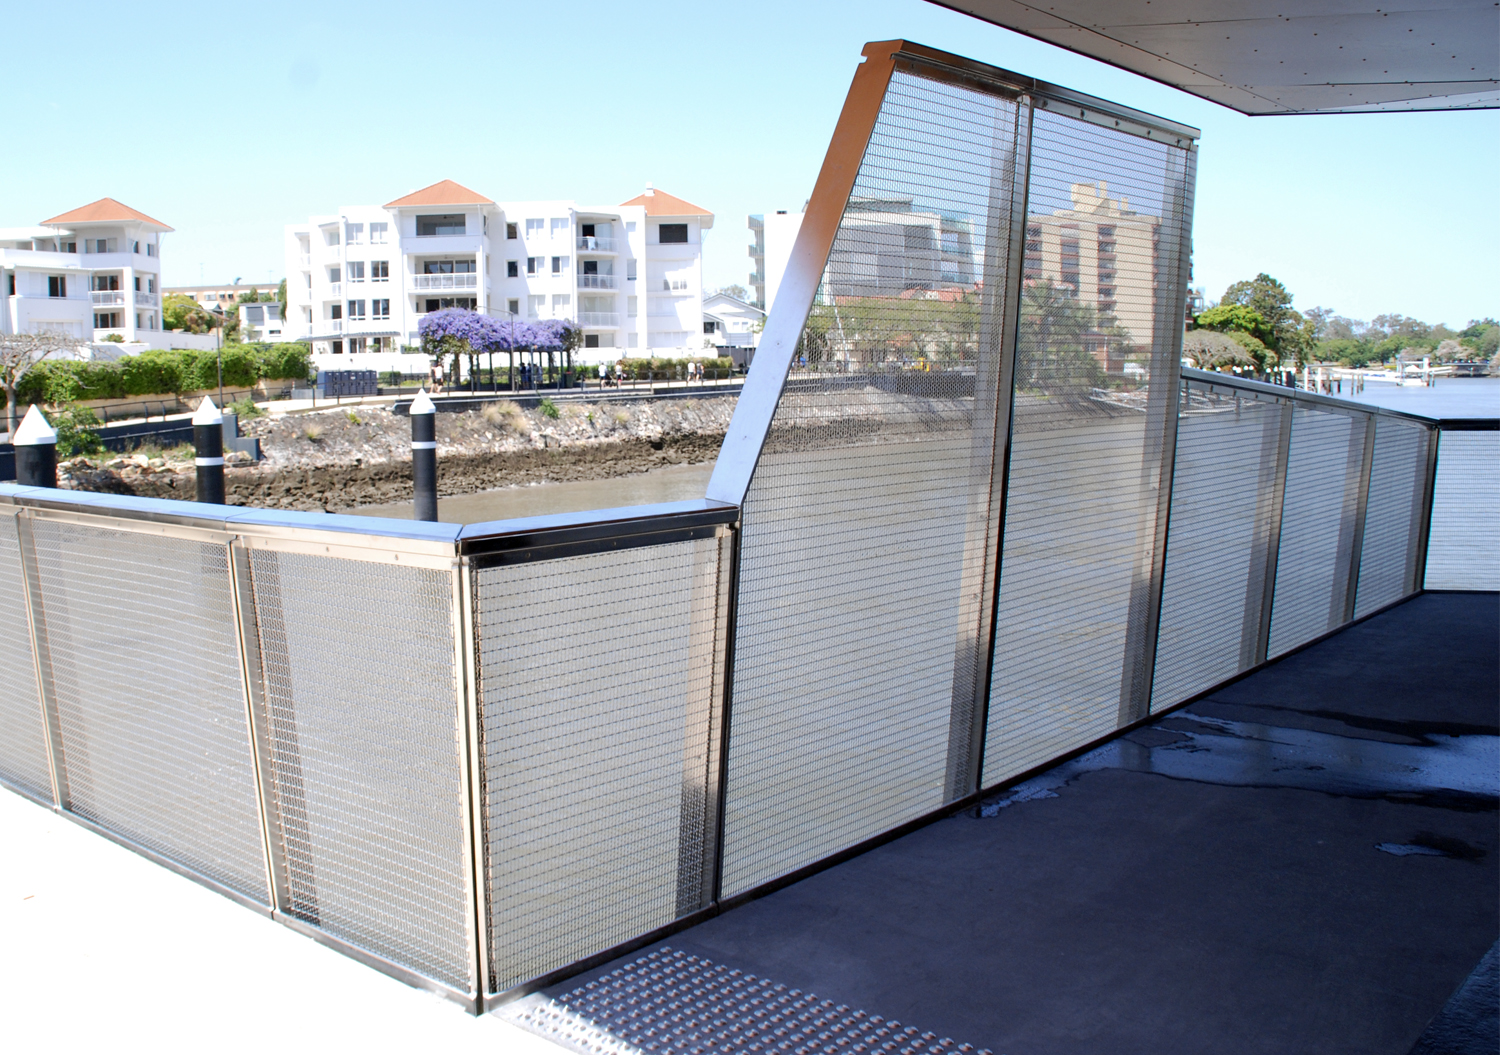 Brisbane Riverwalk stainless balustrade with mesh panel infill Australia